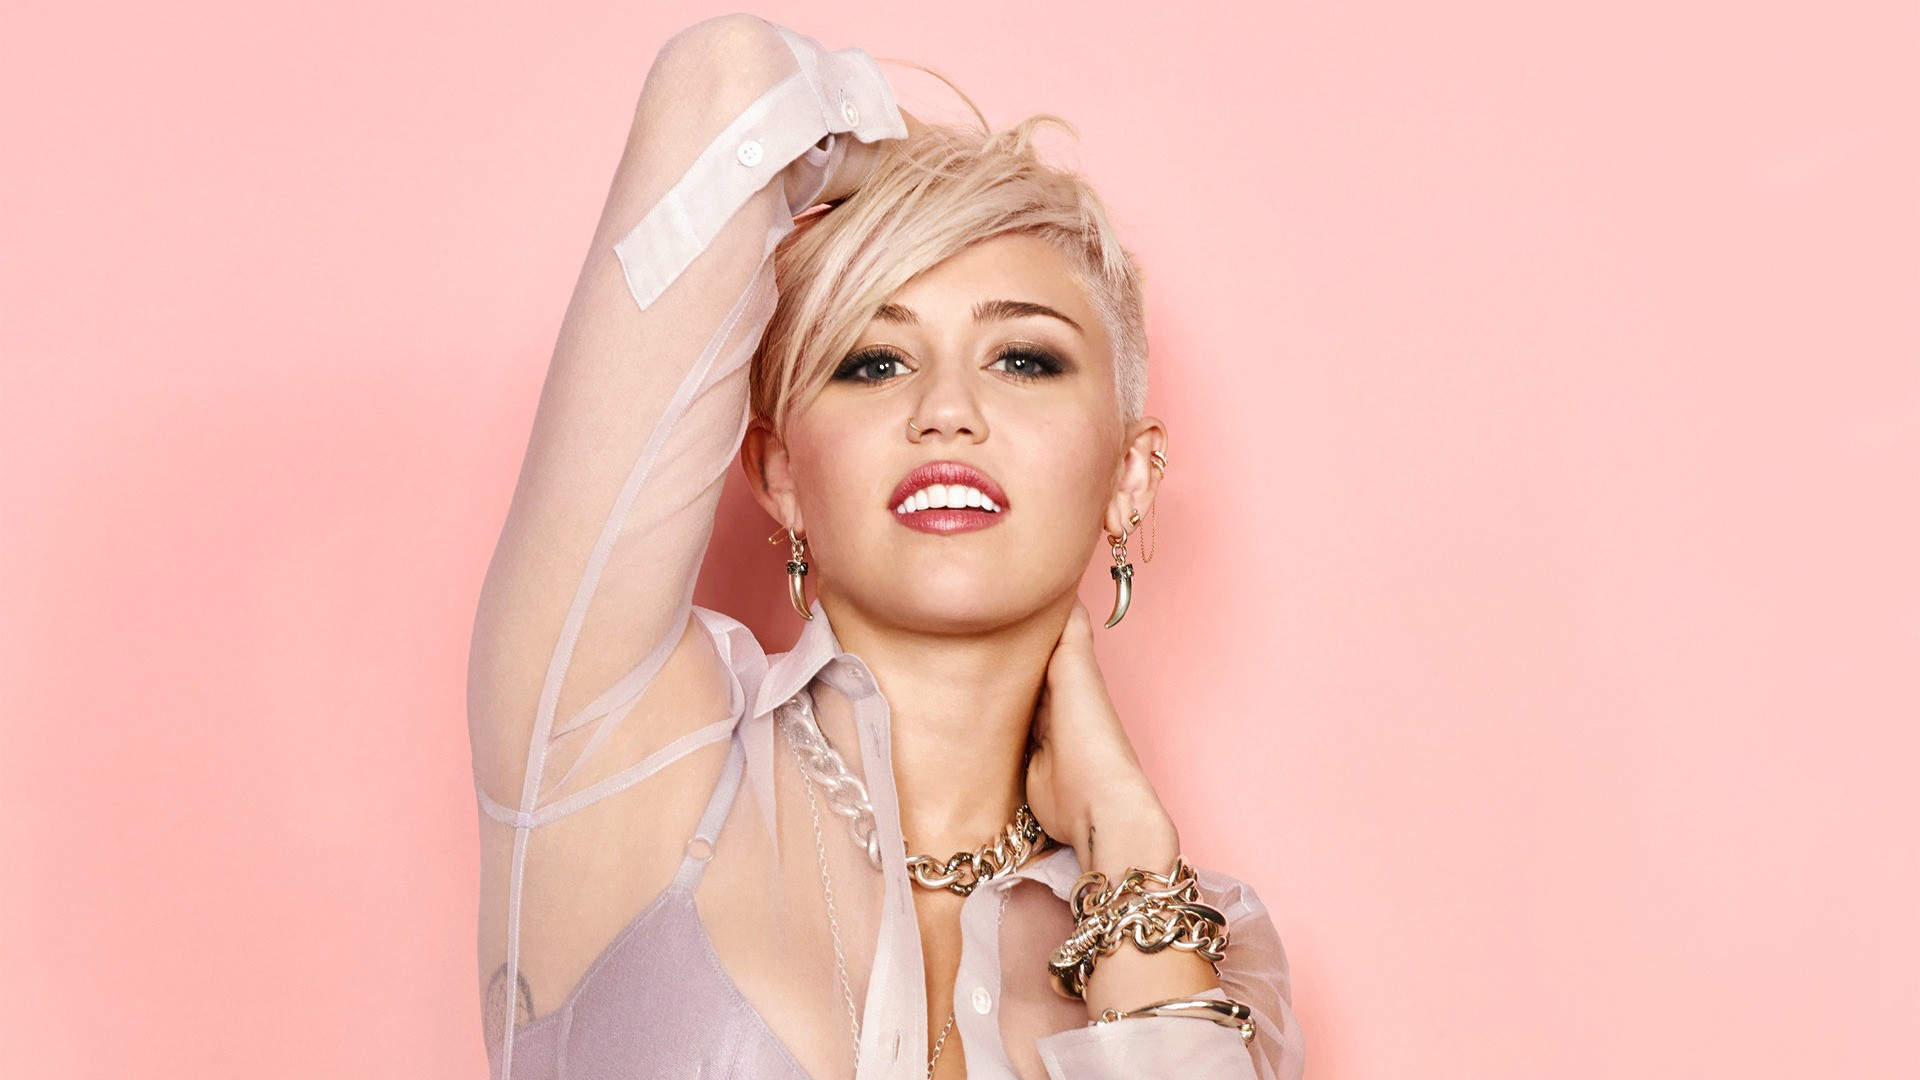 Braison Cyrus Miley Cyrus Wallpapers...